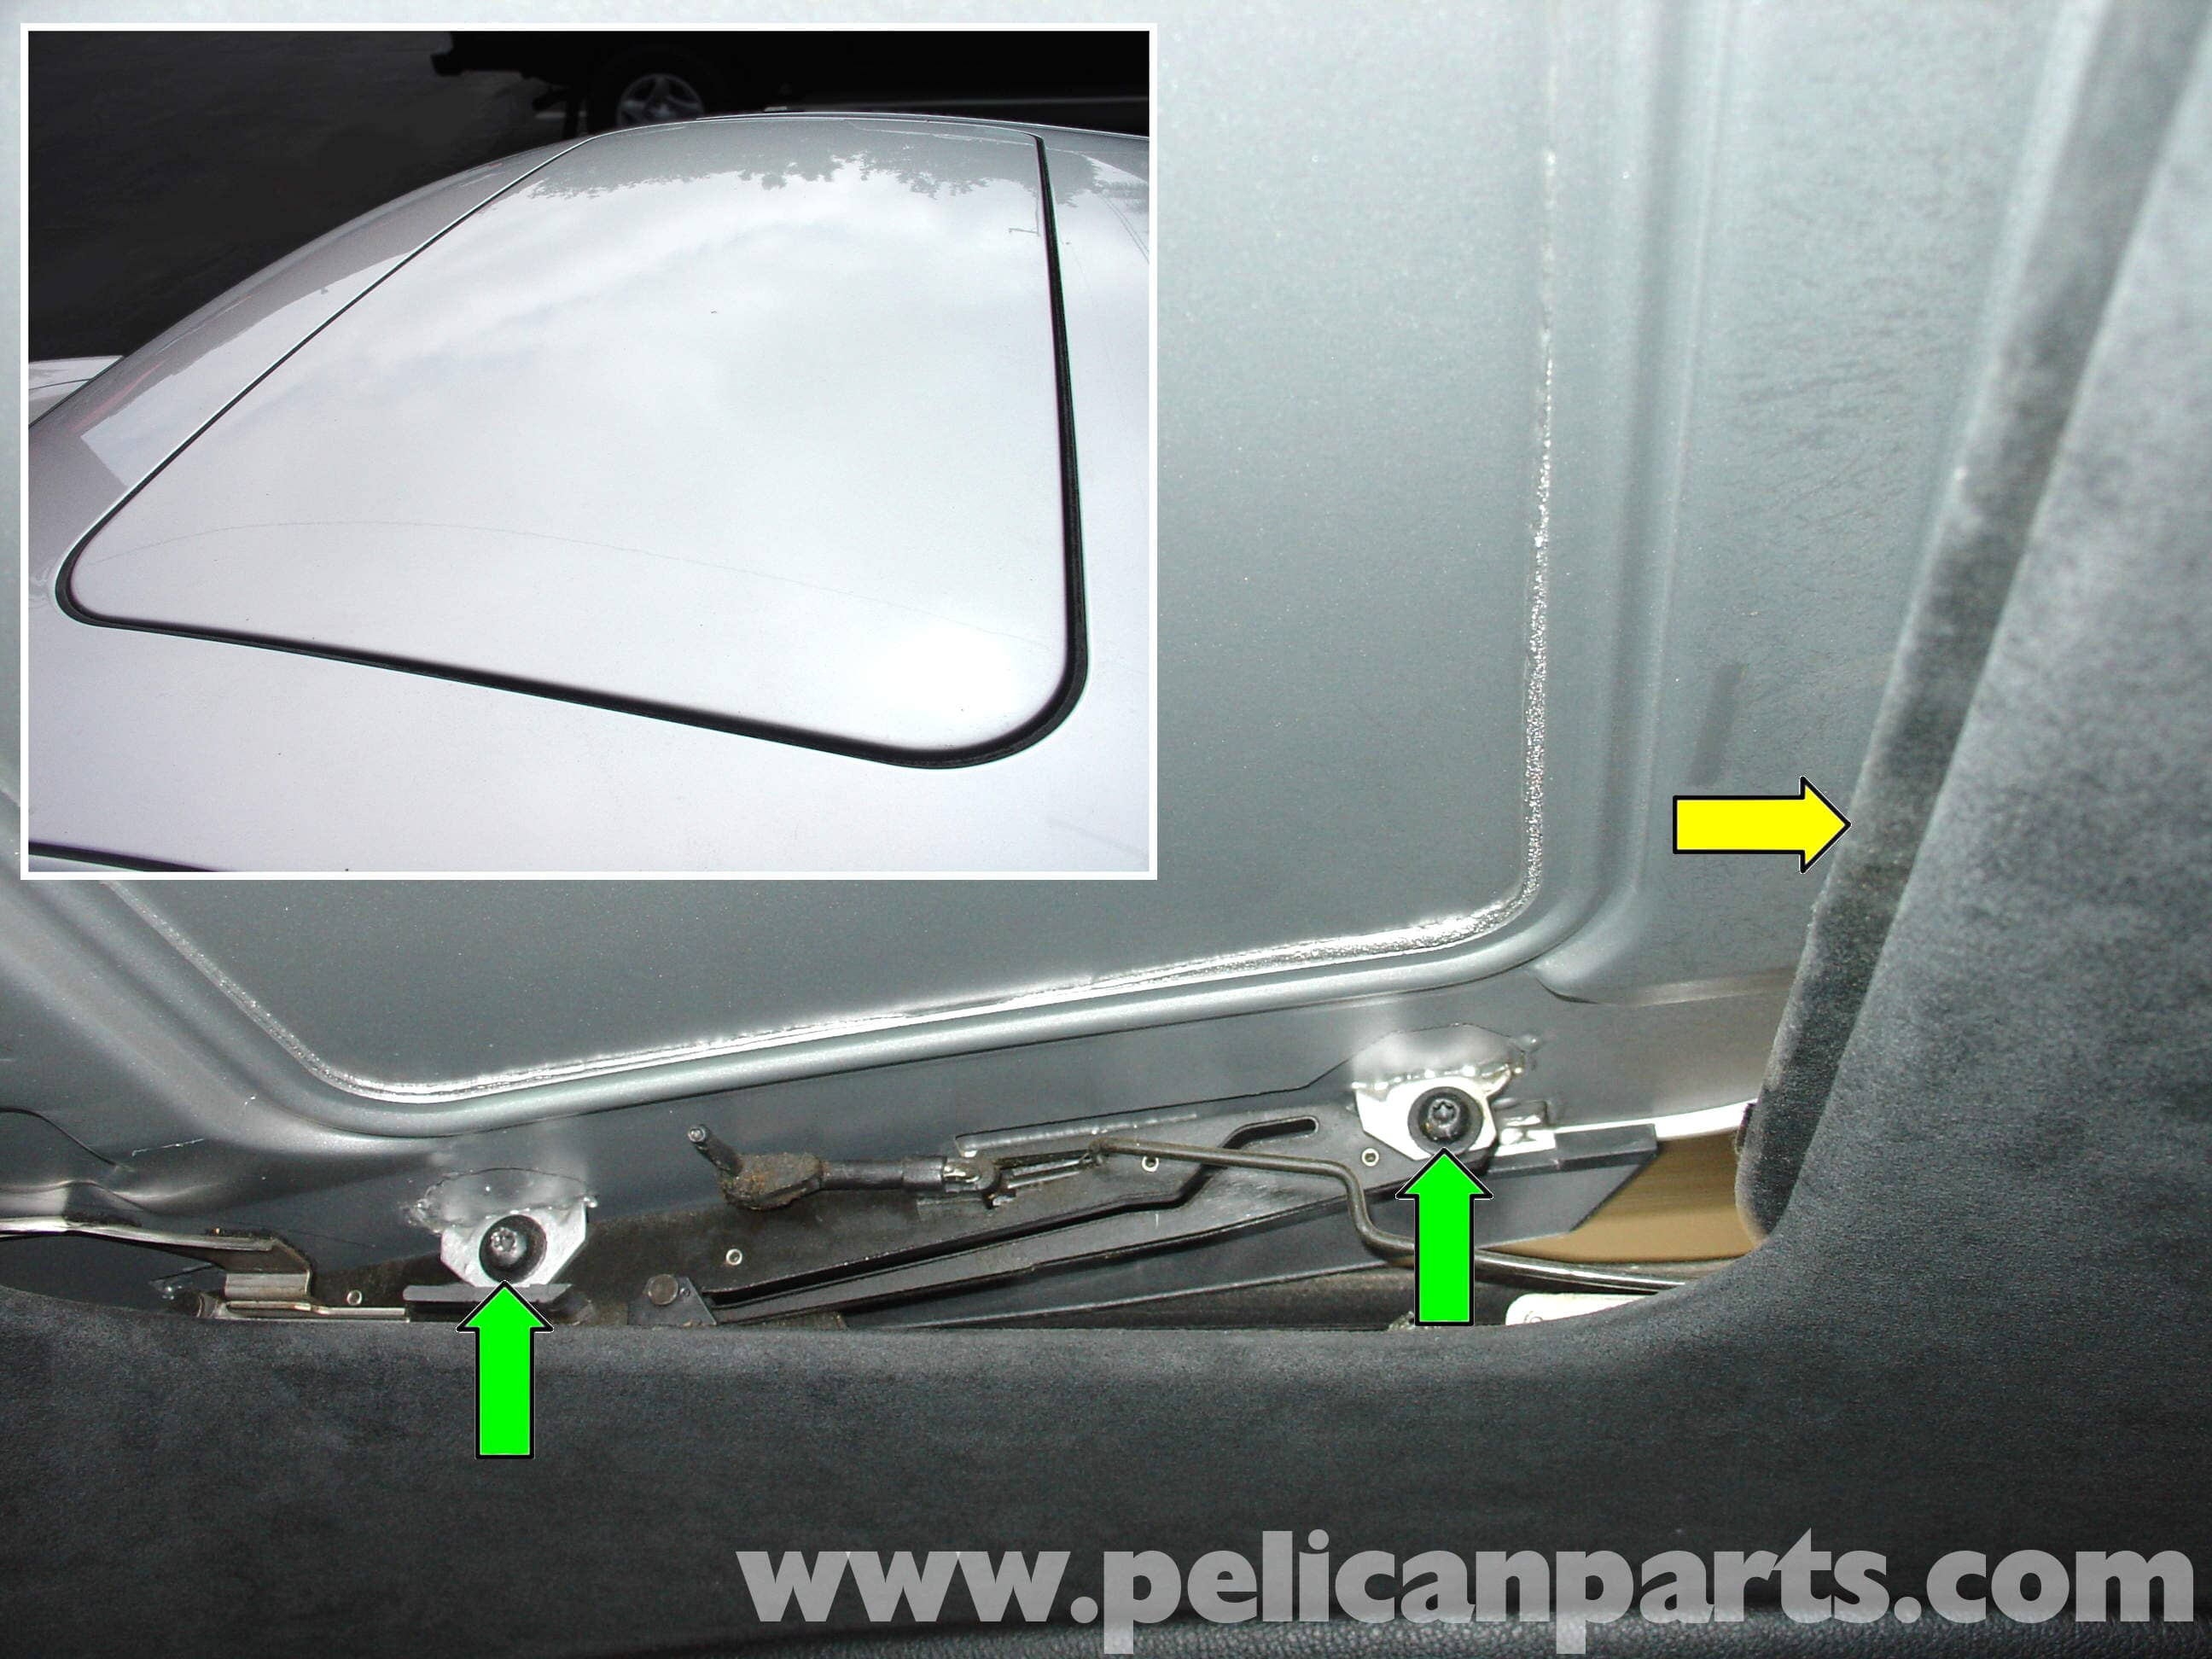 Porsche 911 Carrera Sunroof Repair 996 1998 2005 997